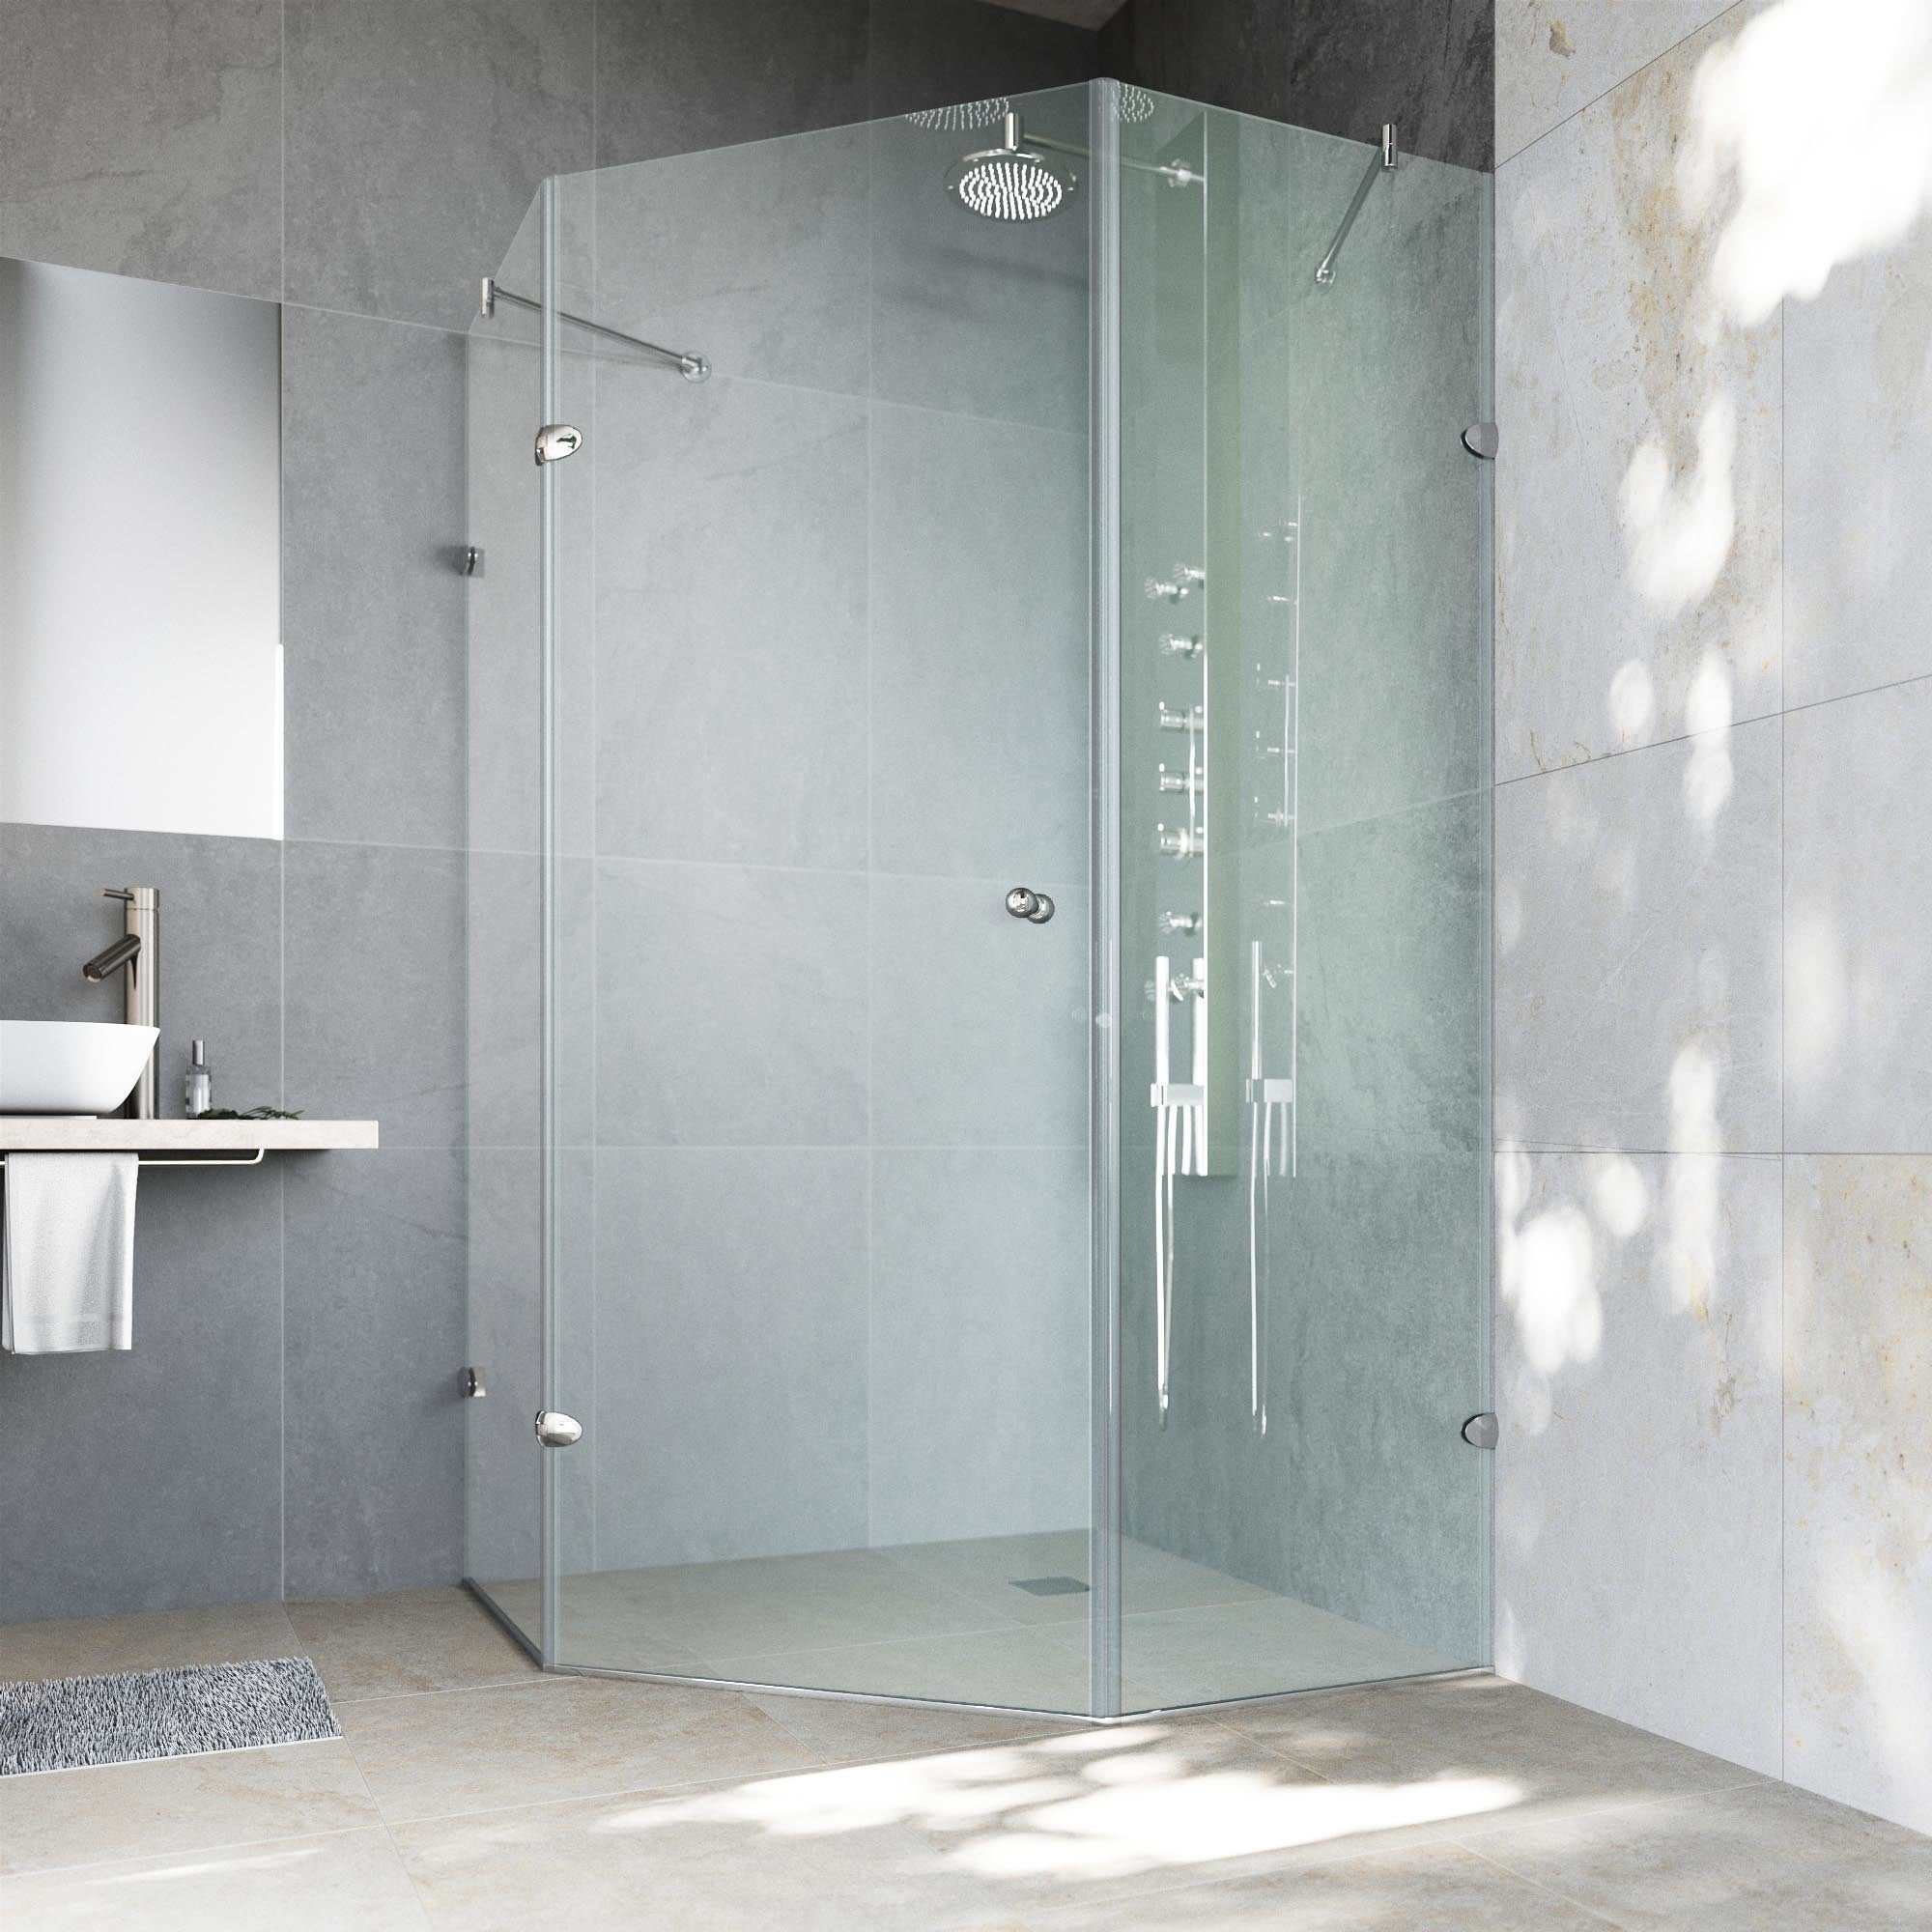 Details About Vigo Self Closing Frameless Neo Angle 3 8 Inch Clear Shower Brushed